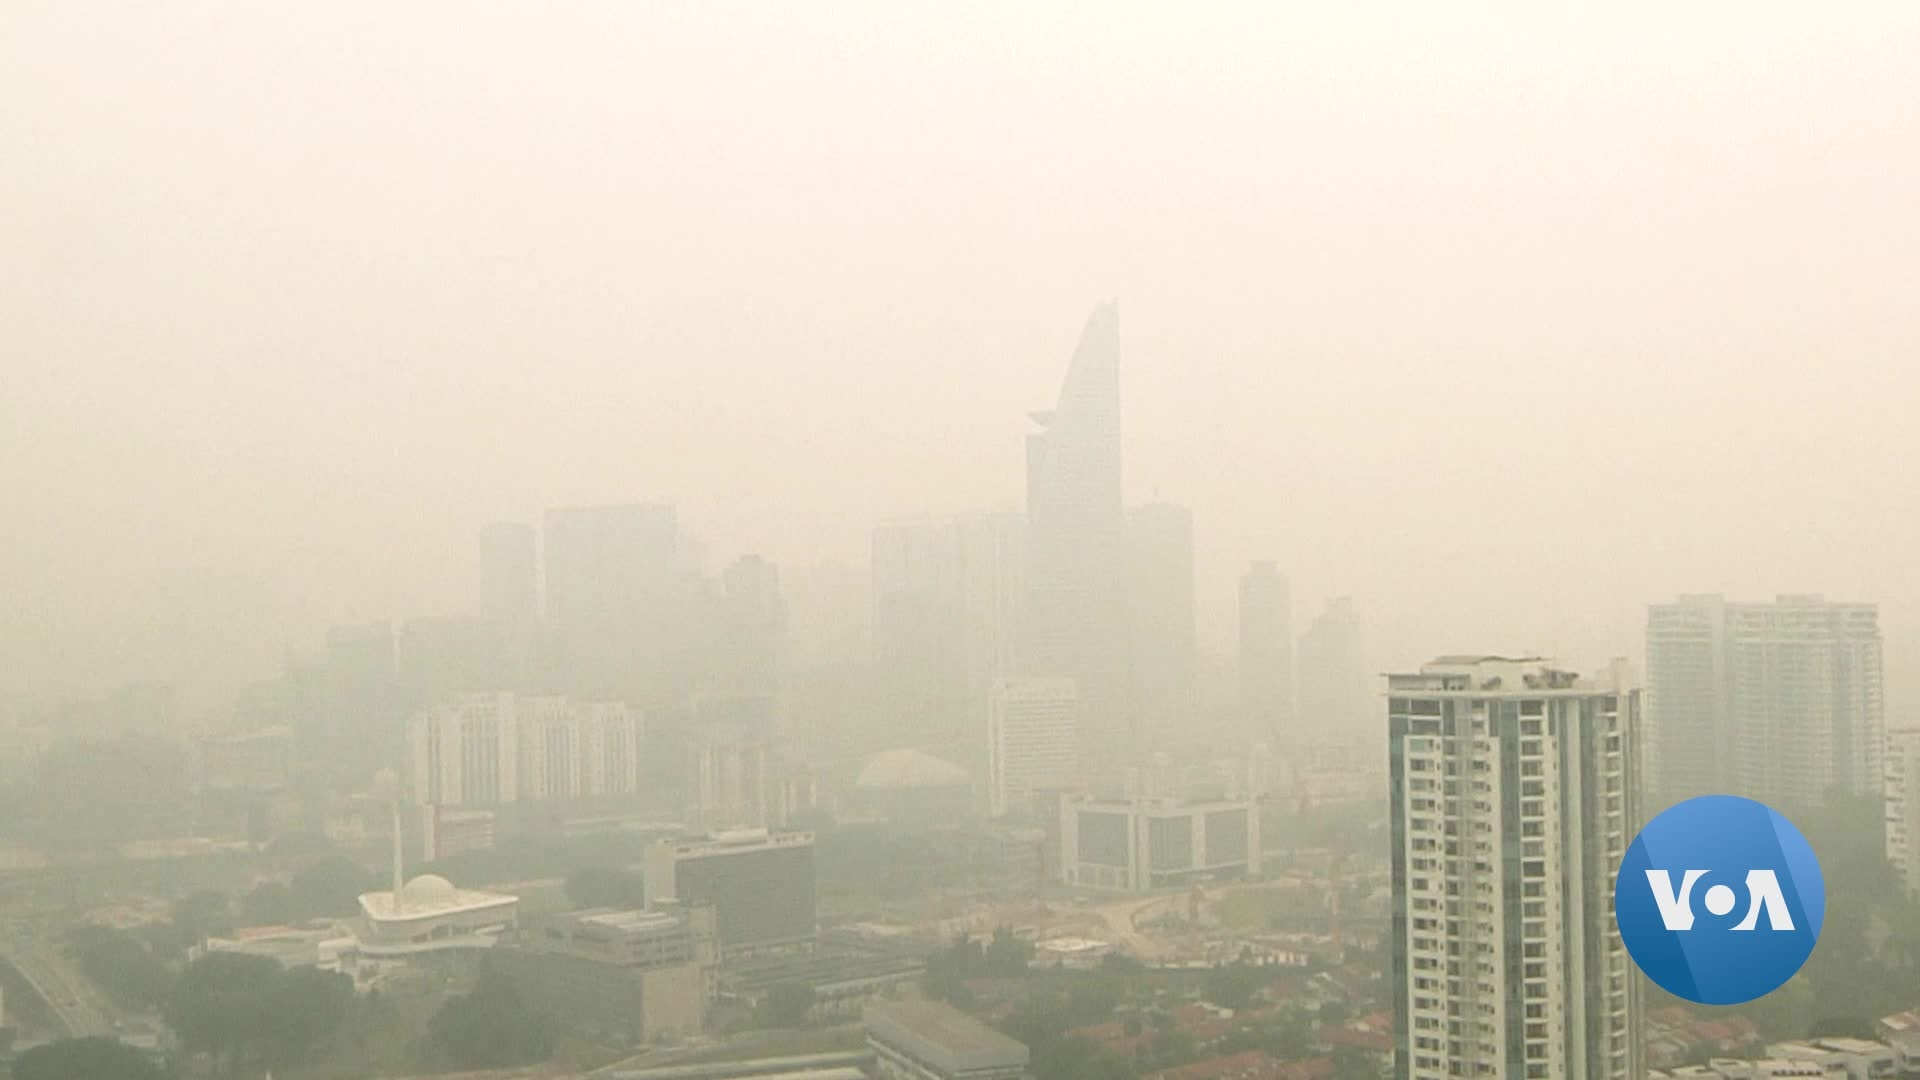 Malaysians Unclear if Significant Steps Will Be Taken to Prevent Toxic Haze